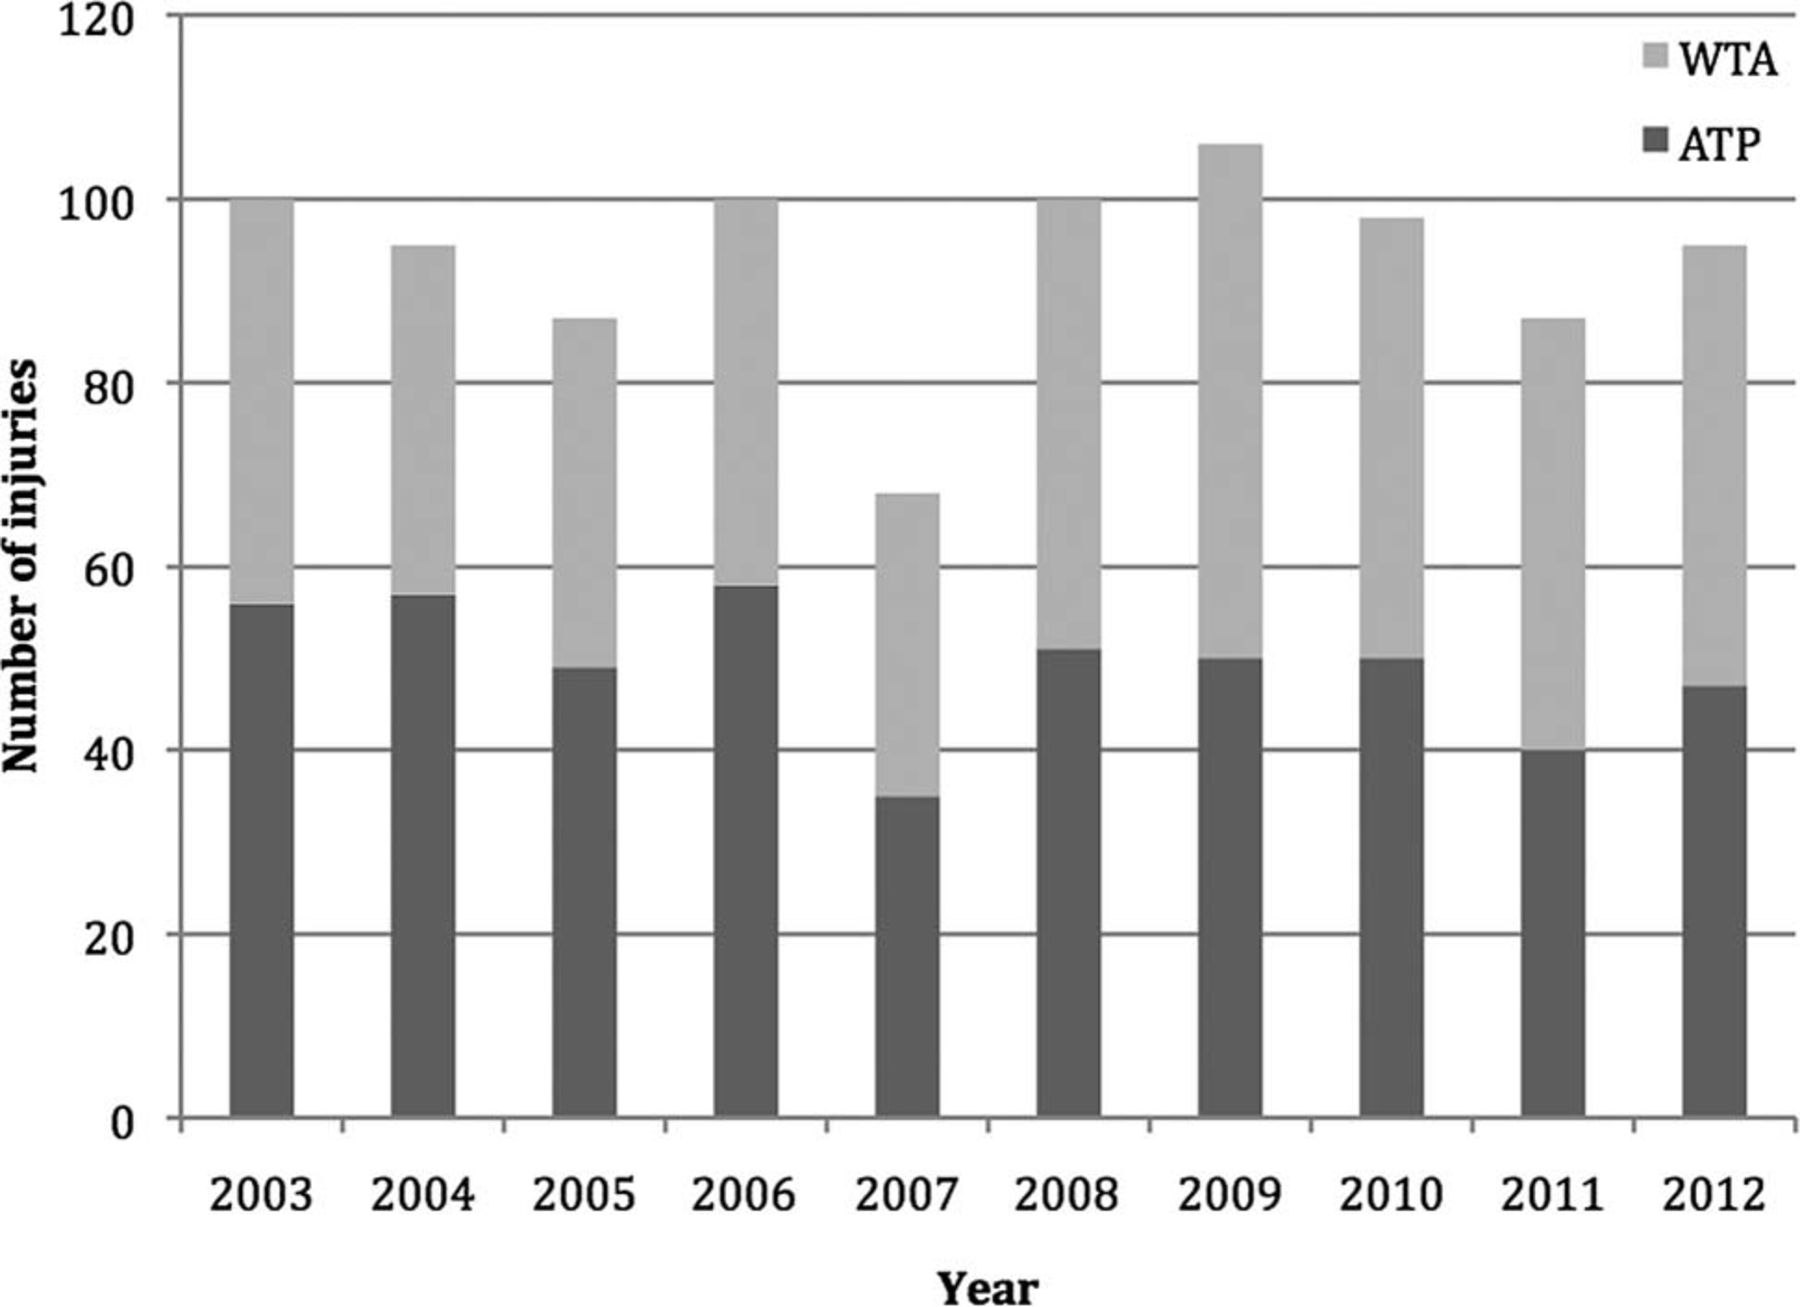 Tennis injury data from The Championships, Wimbledon, from 2003 to